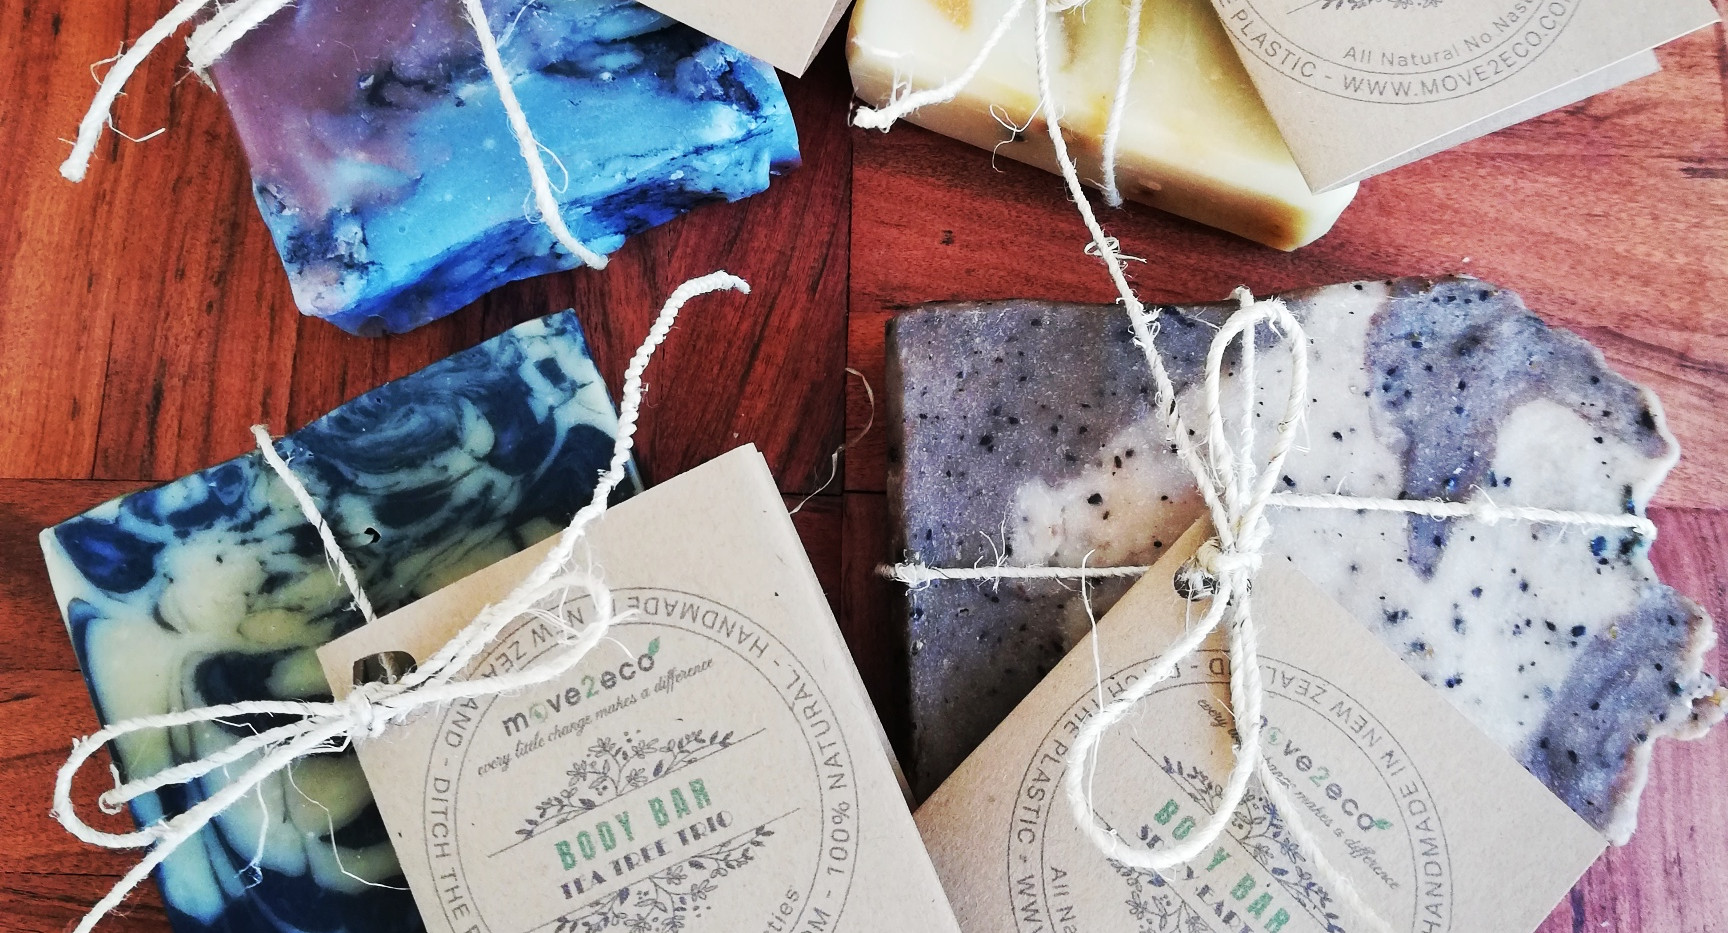 Natural Soaps - Body Bars